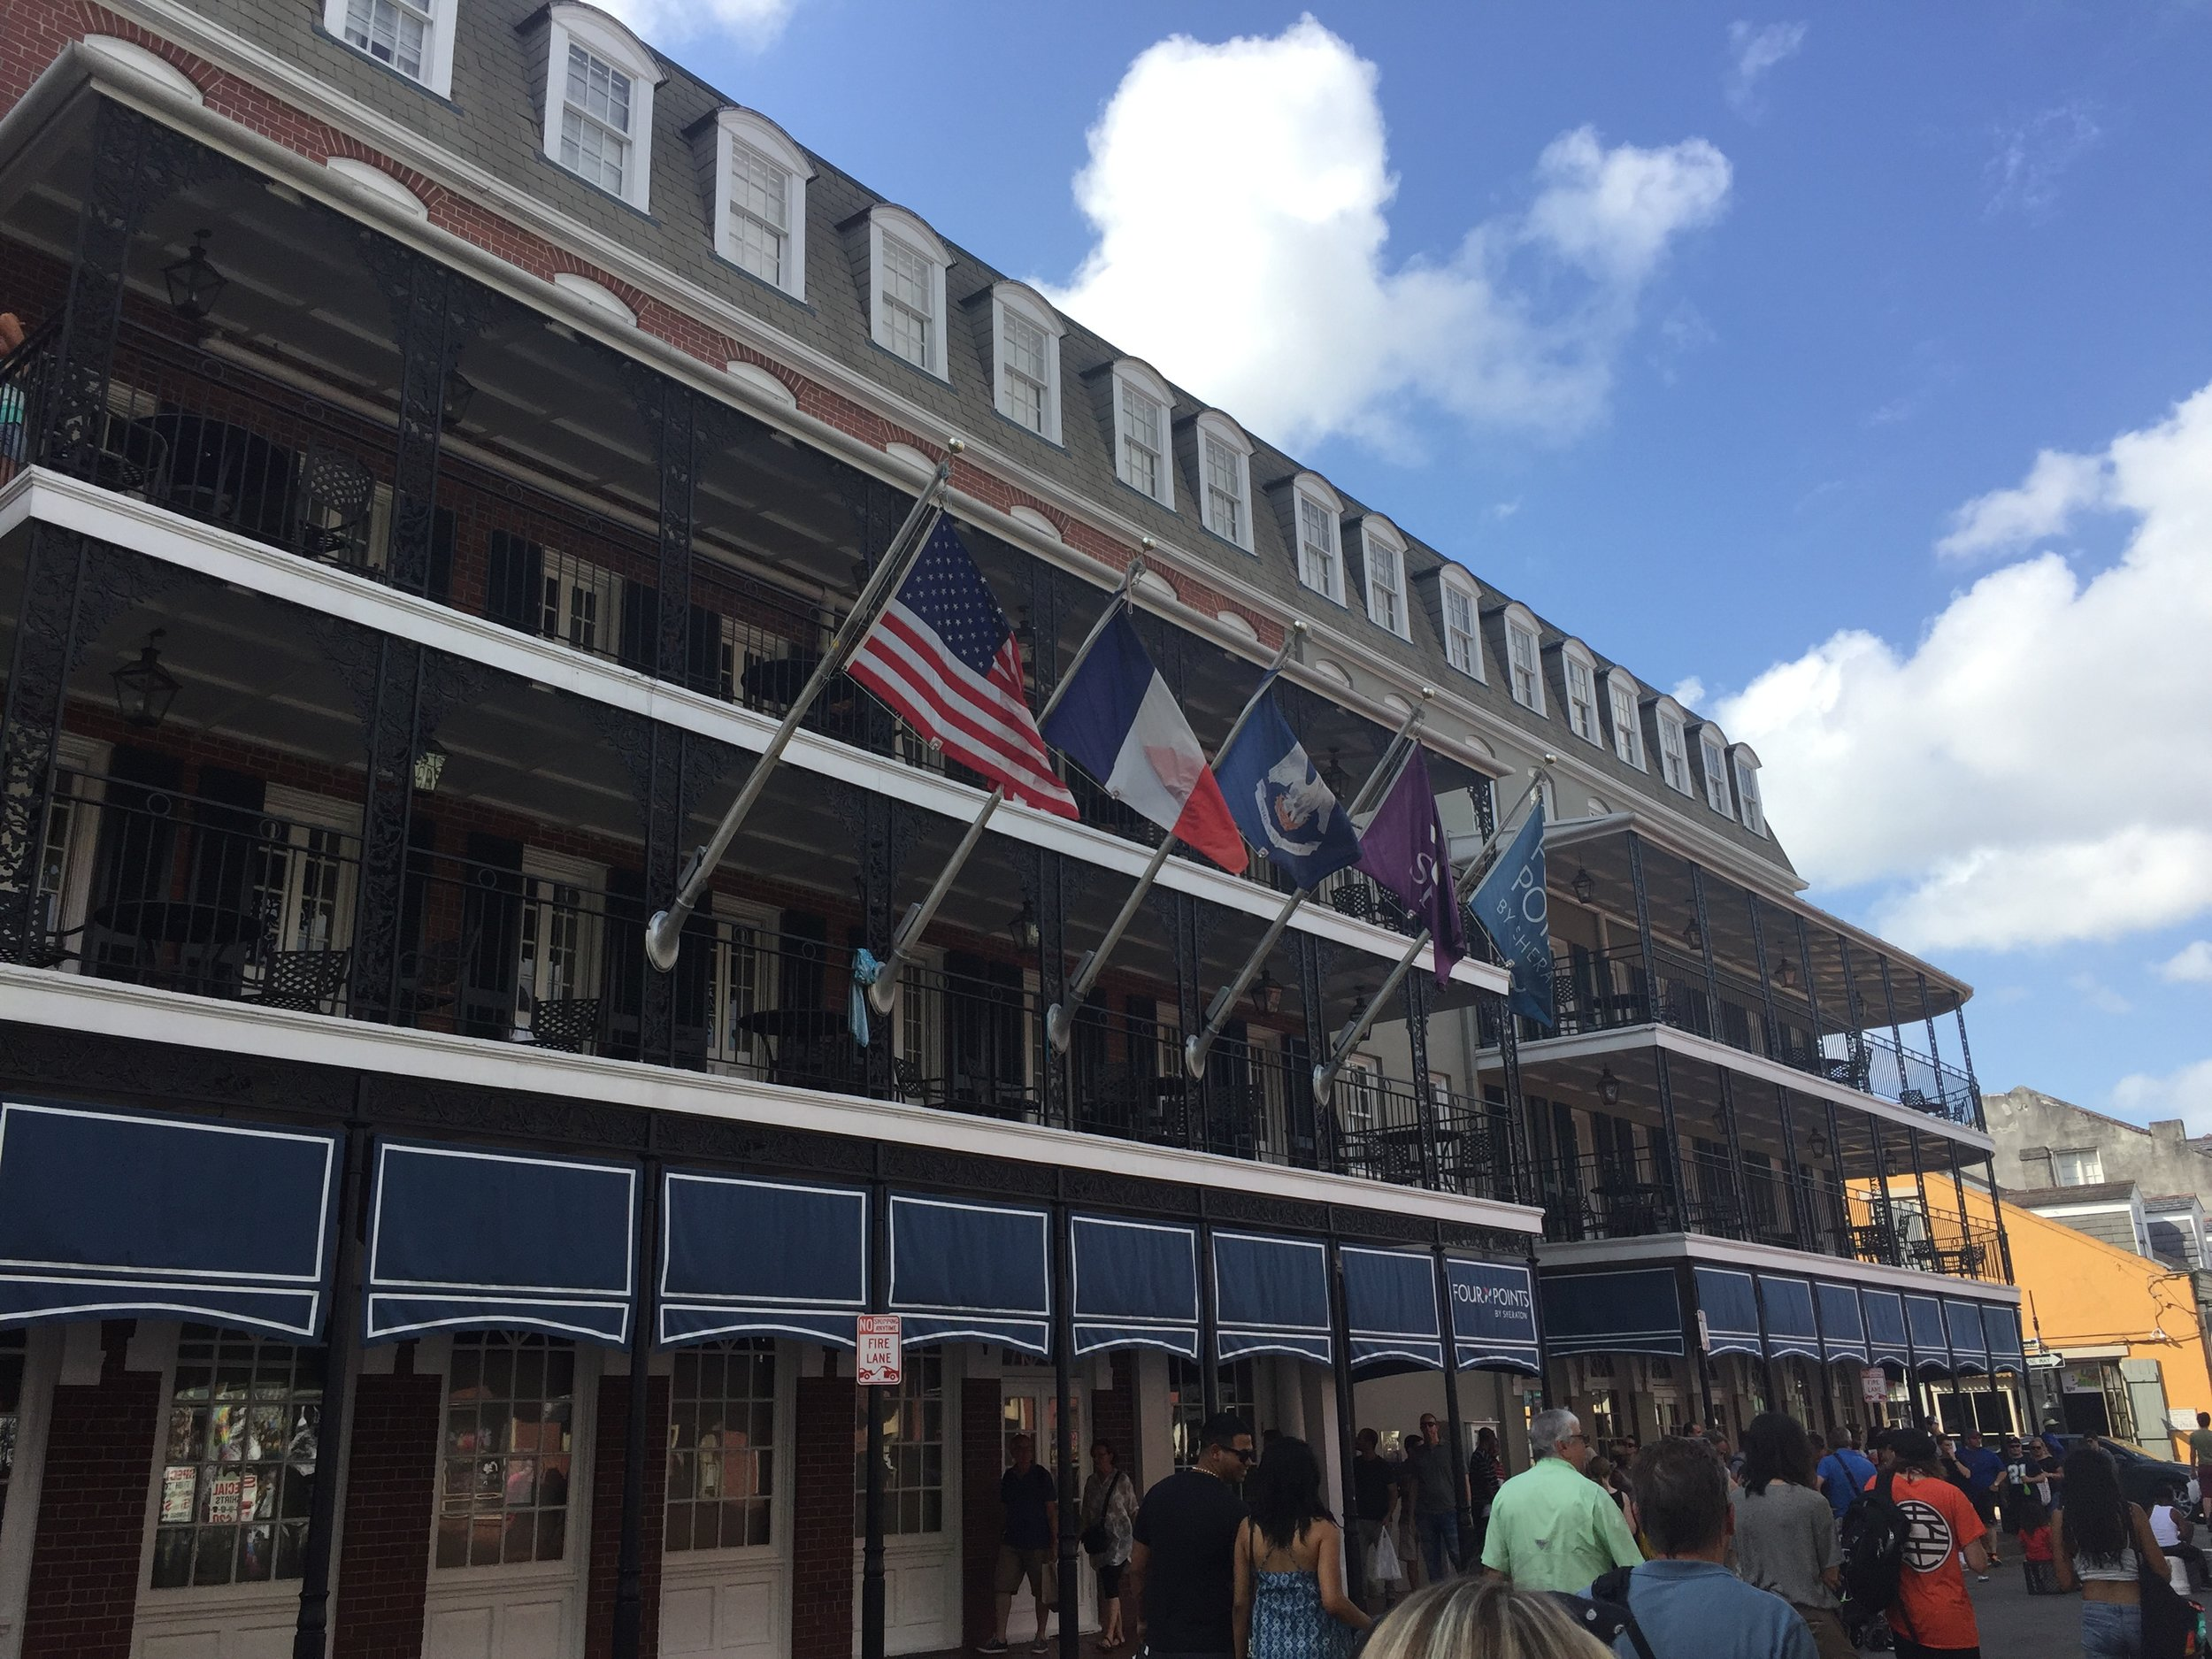 America, France, and Louisiana. All three flags displayed together on the famous Bourbon St. outside of a nice hotel.